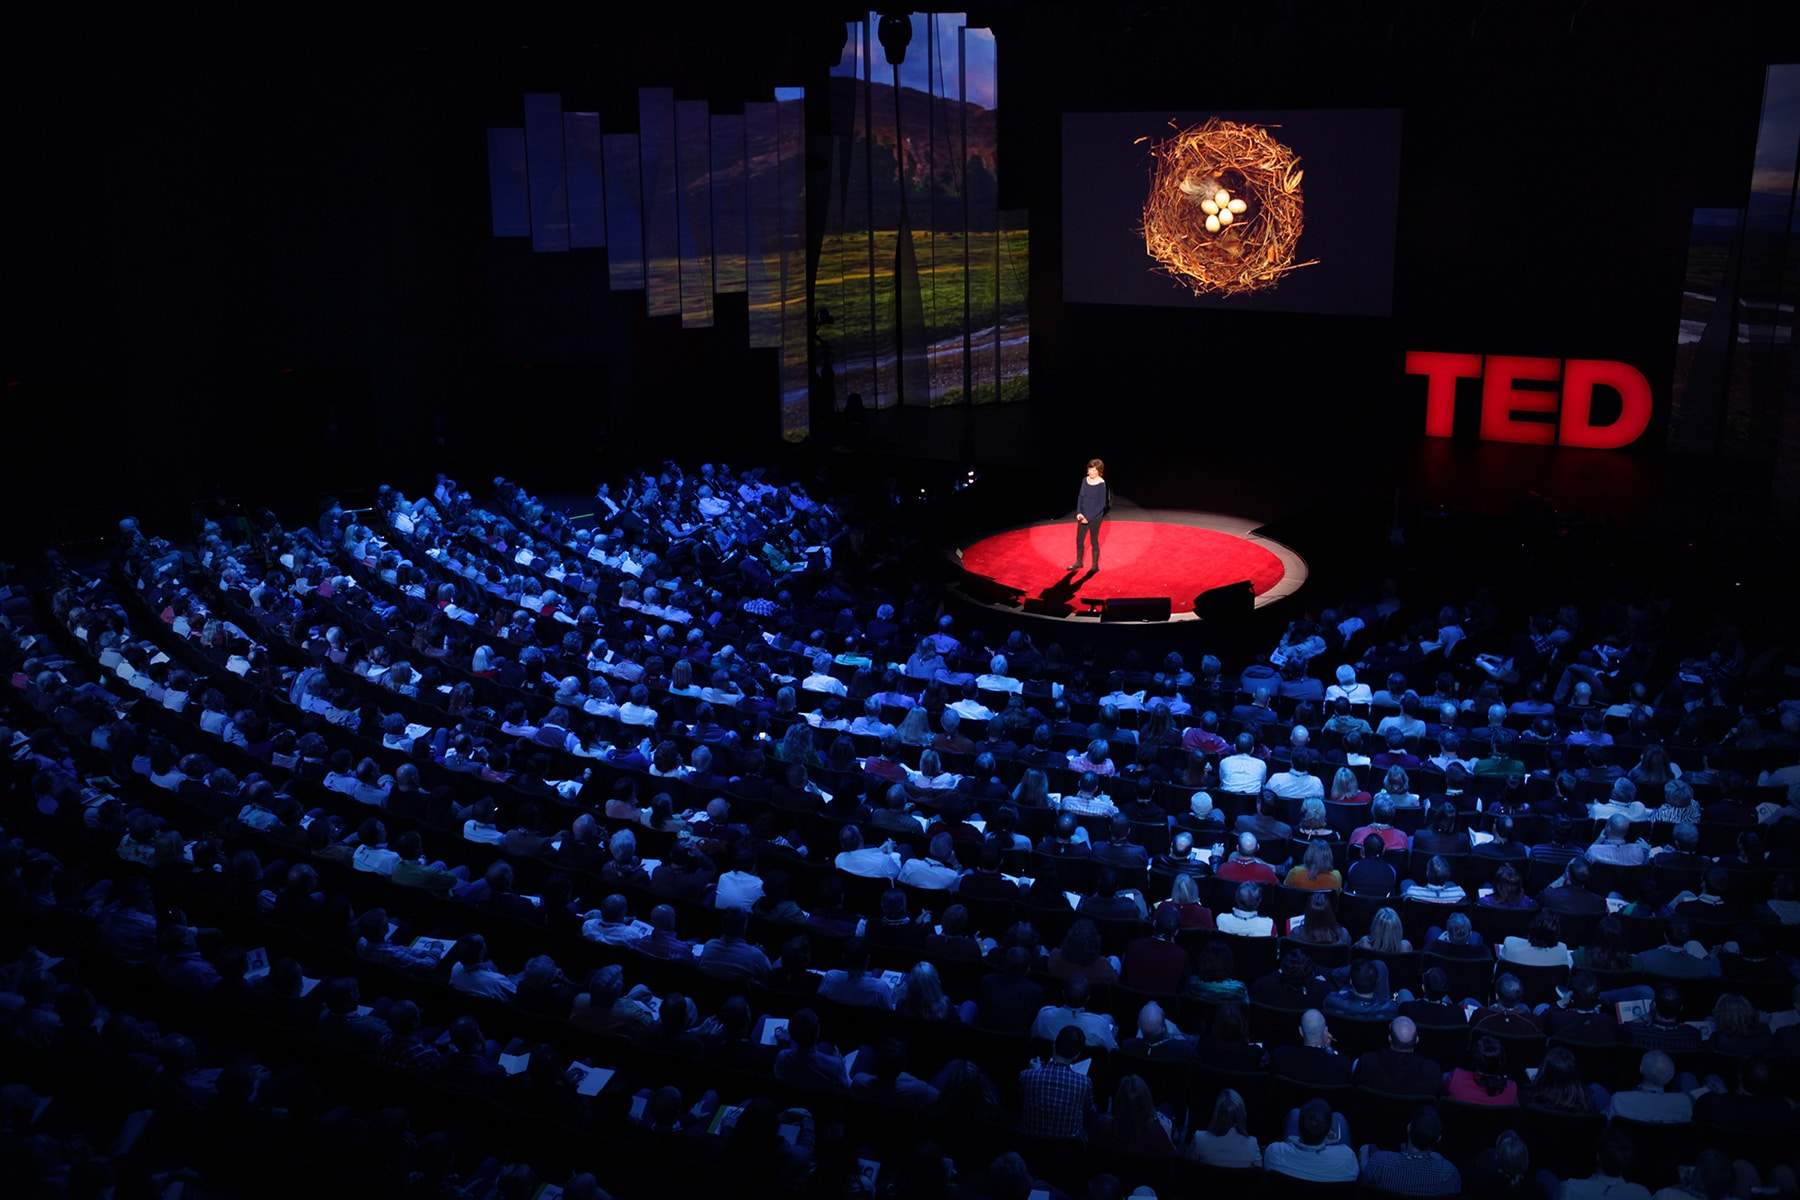 Best Ted Talks 2020.Top 10 Ted Talks To Watch Before A Job Interview Or